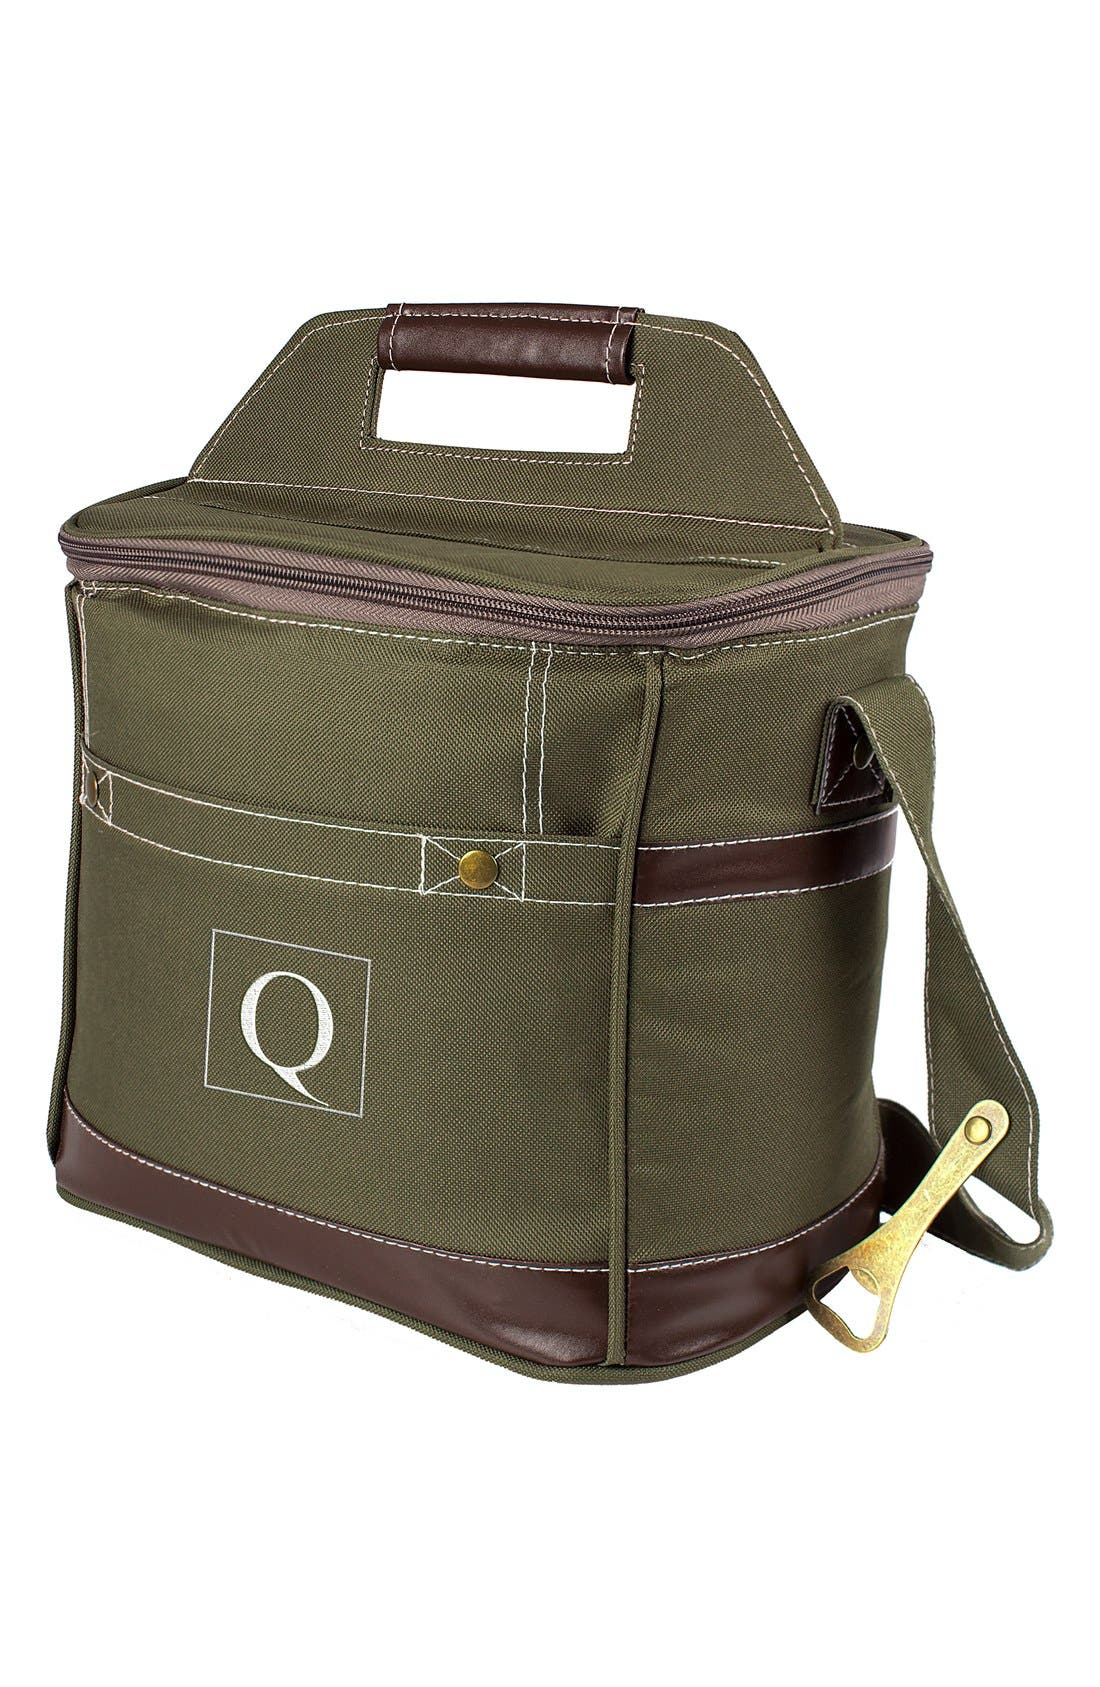 Monogram 12-Bottle Beer Cooler,                             Main thumbnail 1, color,                             Green - Q